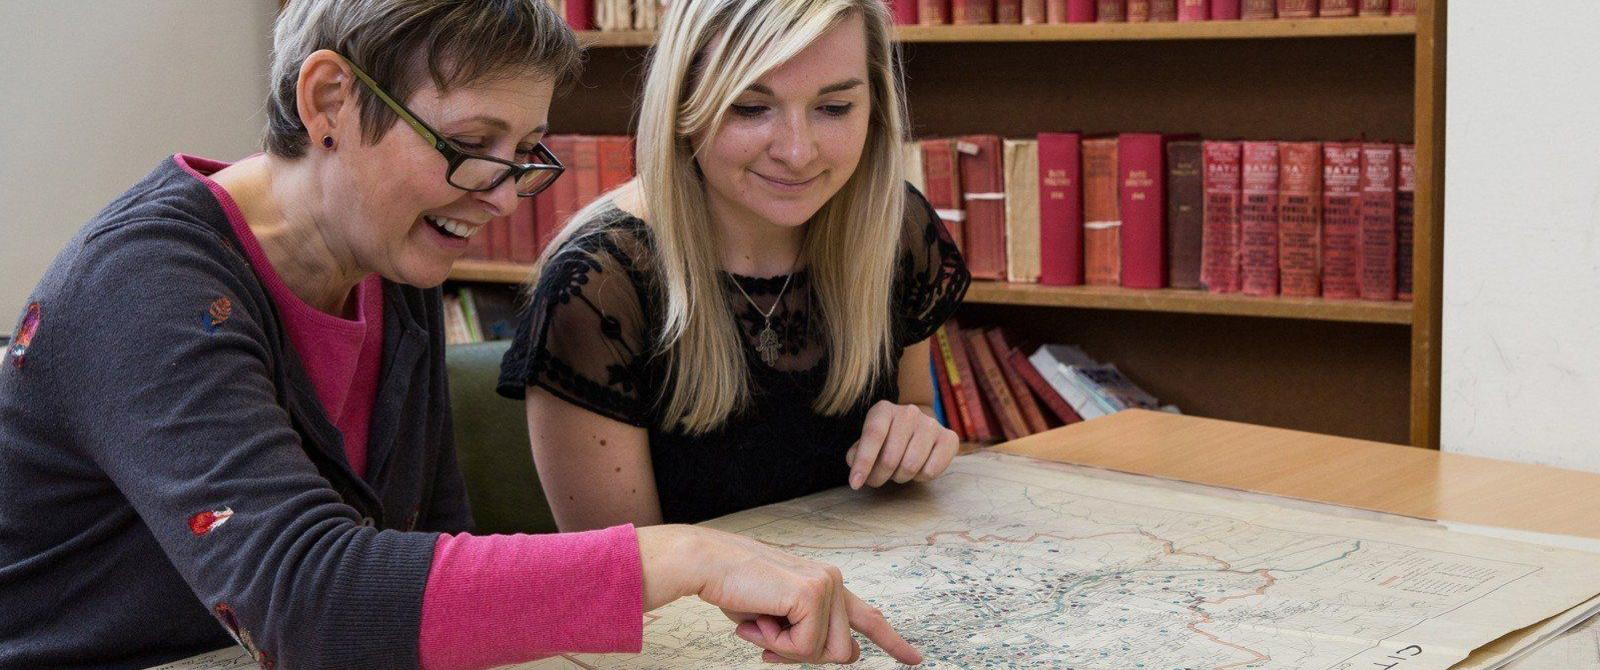 Two visitors in the Record Office searchroom looking at an old map.